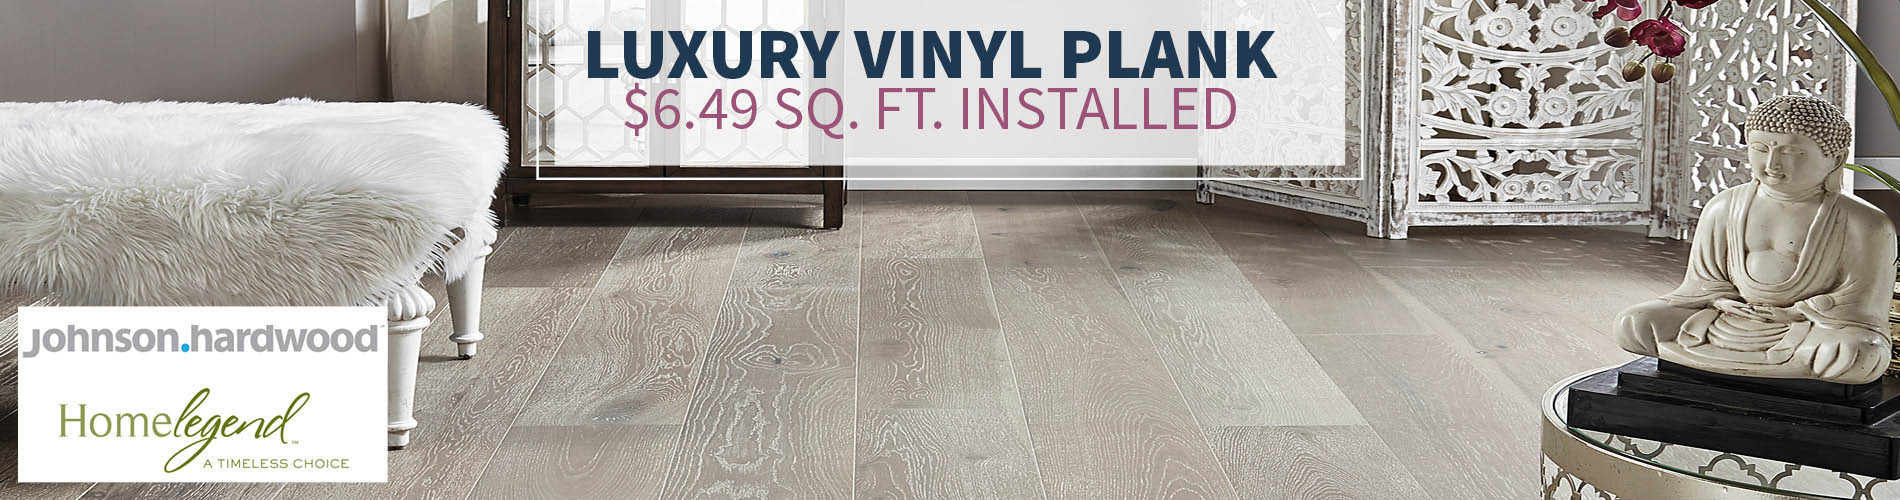 Luxury Vinyl Plank - $6.49 sq.ft. INSTALLED!